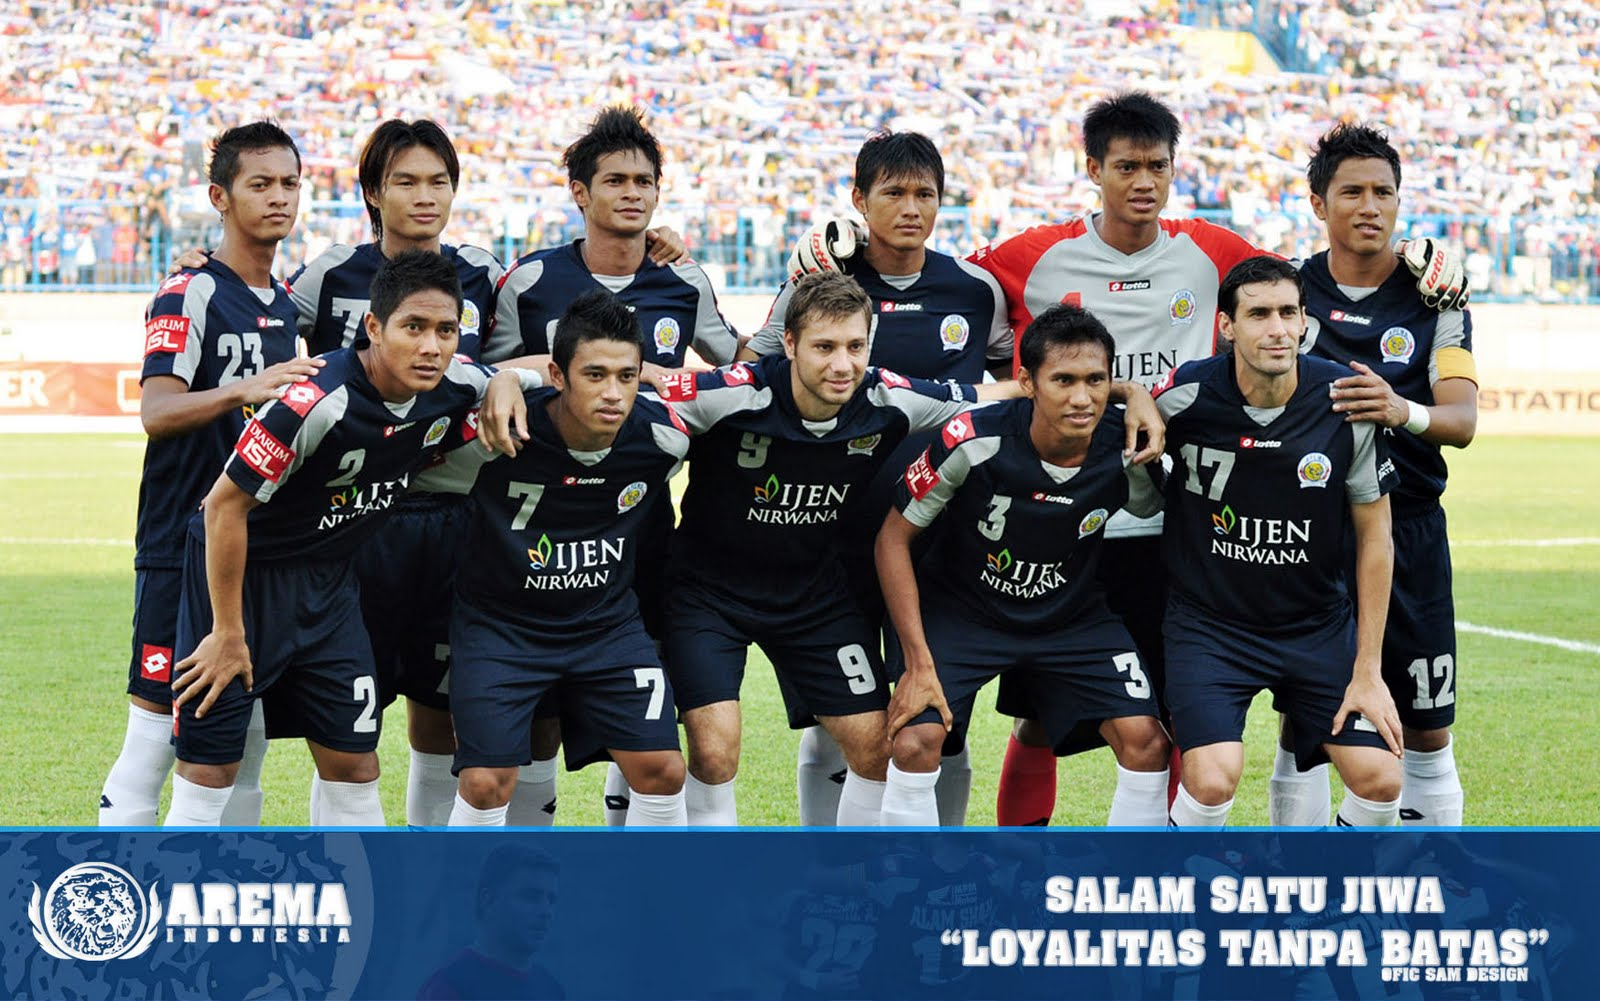 http://1.bp.blogspot.com/-K5sj3bF_nCo/TglqJLIUuMI/AAAAAAAAAUQ/61v3DqCcI10/s1600/wallpaper+arema+indonesia+2011+%2528TEAM+AREMA+INDONESIA%2529+by+%2528ofic+sam%2529+fb..+boy_gassipers%2540yahoo.co.id+2.jpg